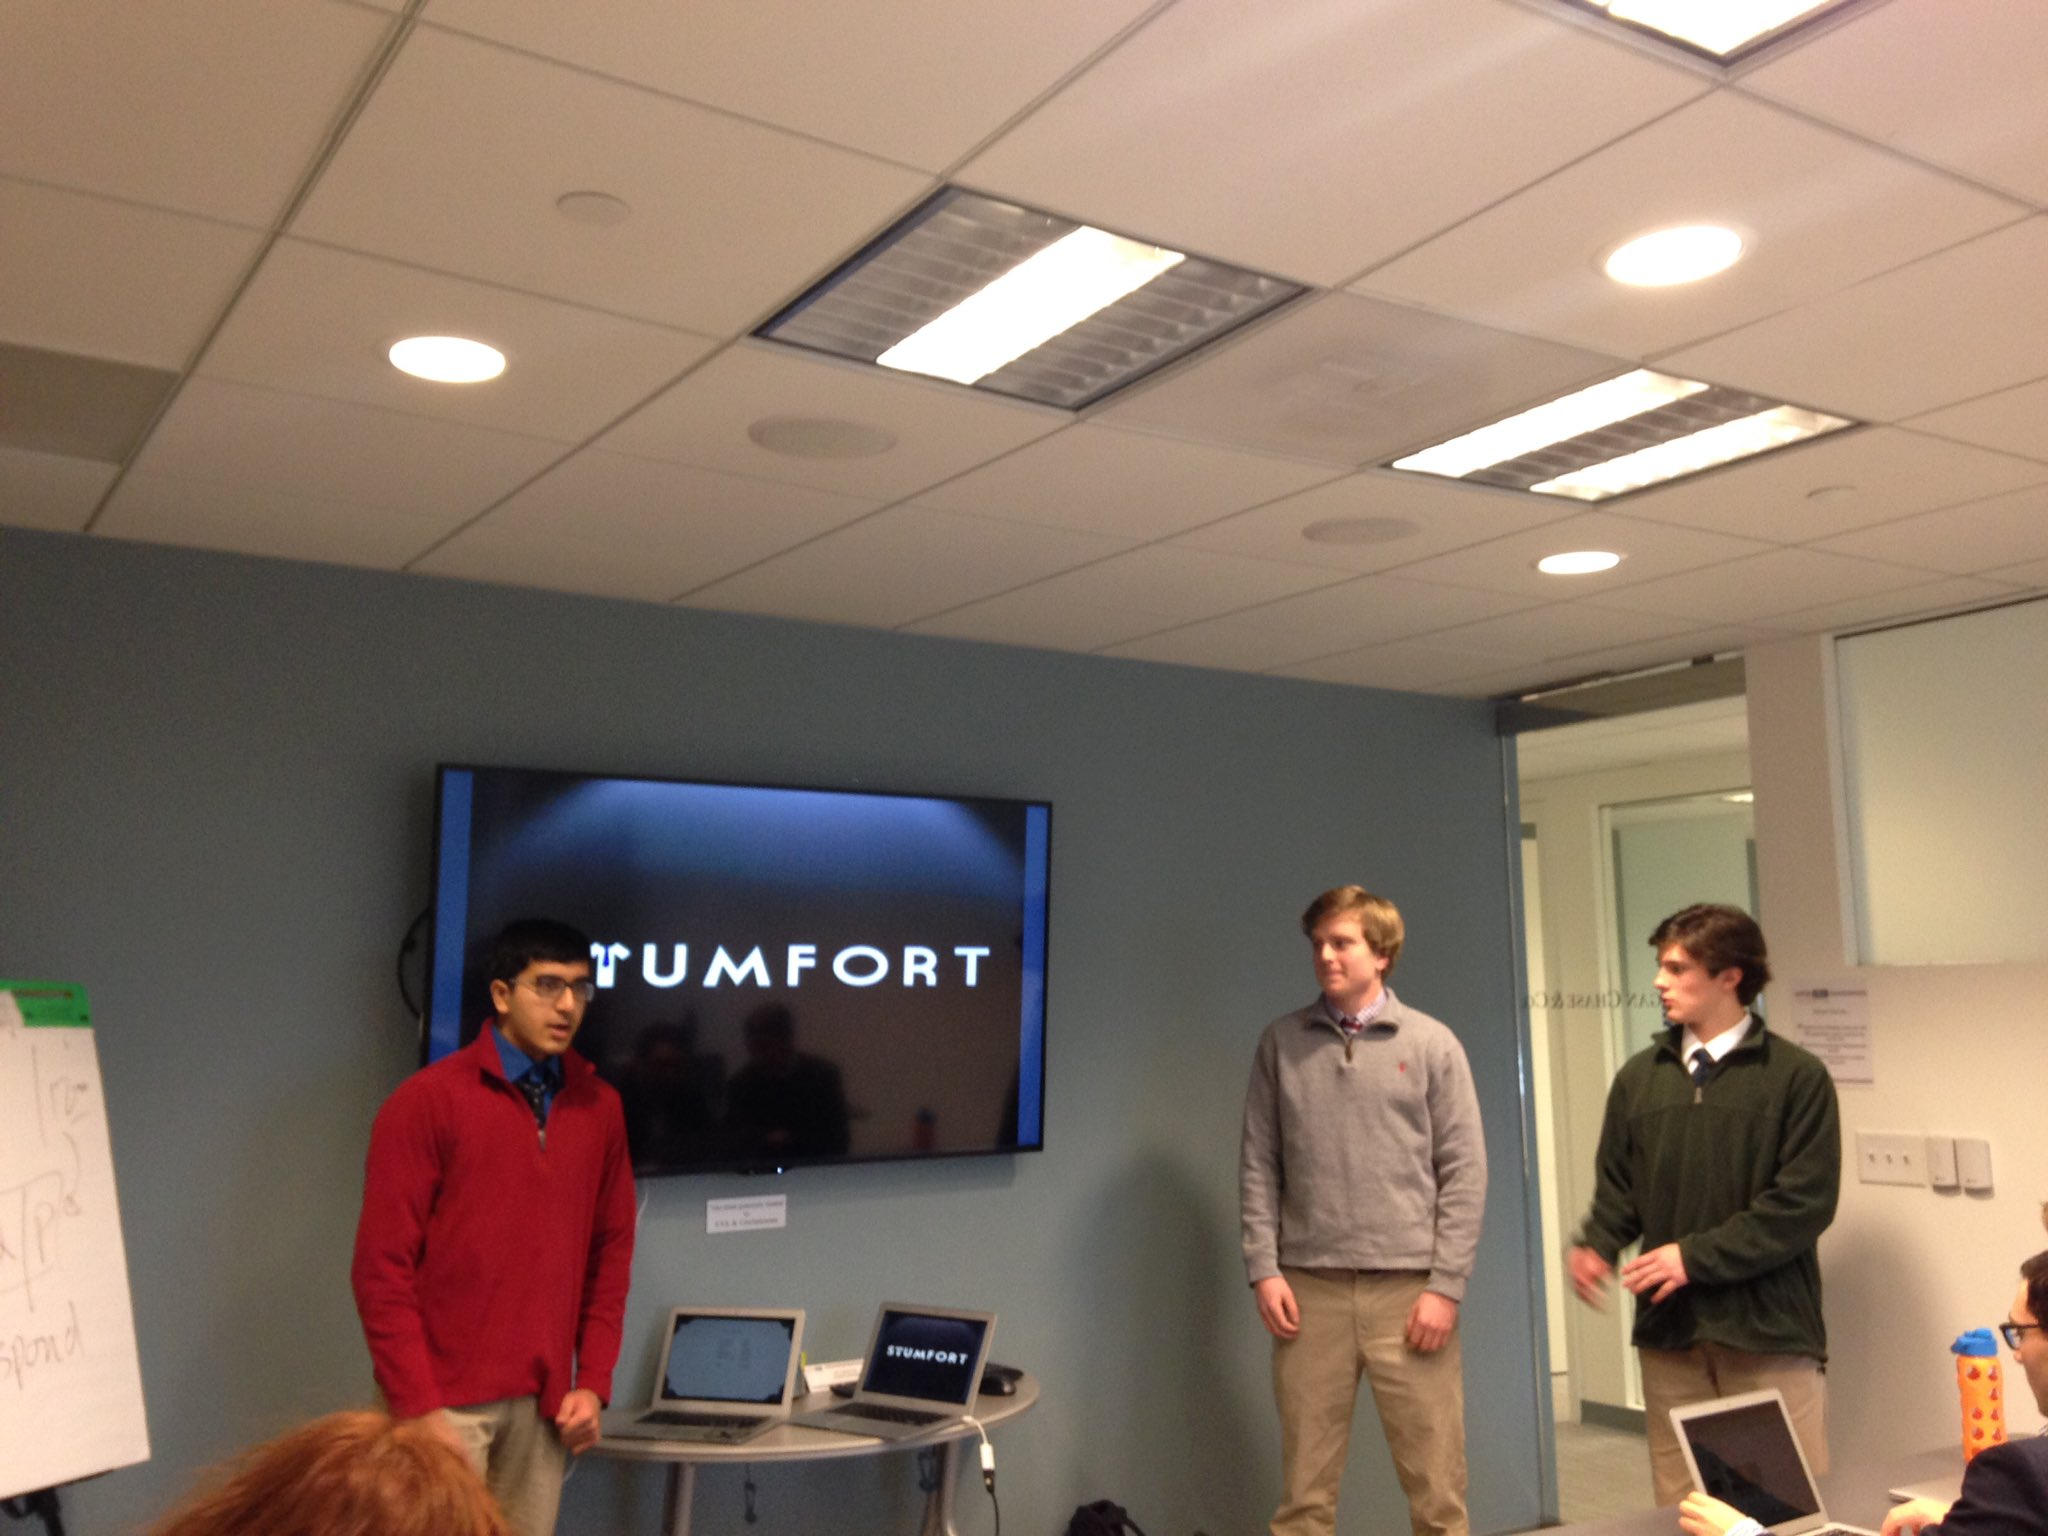 @StumfortApparel Great job on your pitch!  You were a hit!  #myflinthill https://t.co/YXUJFKjFg9